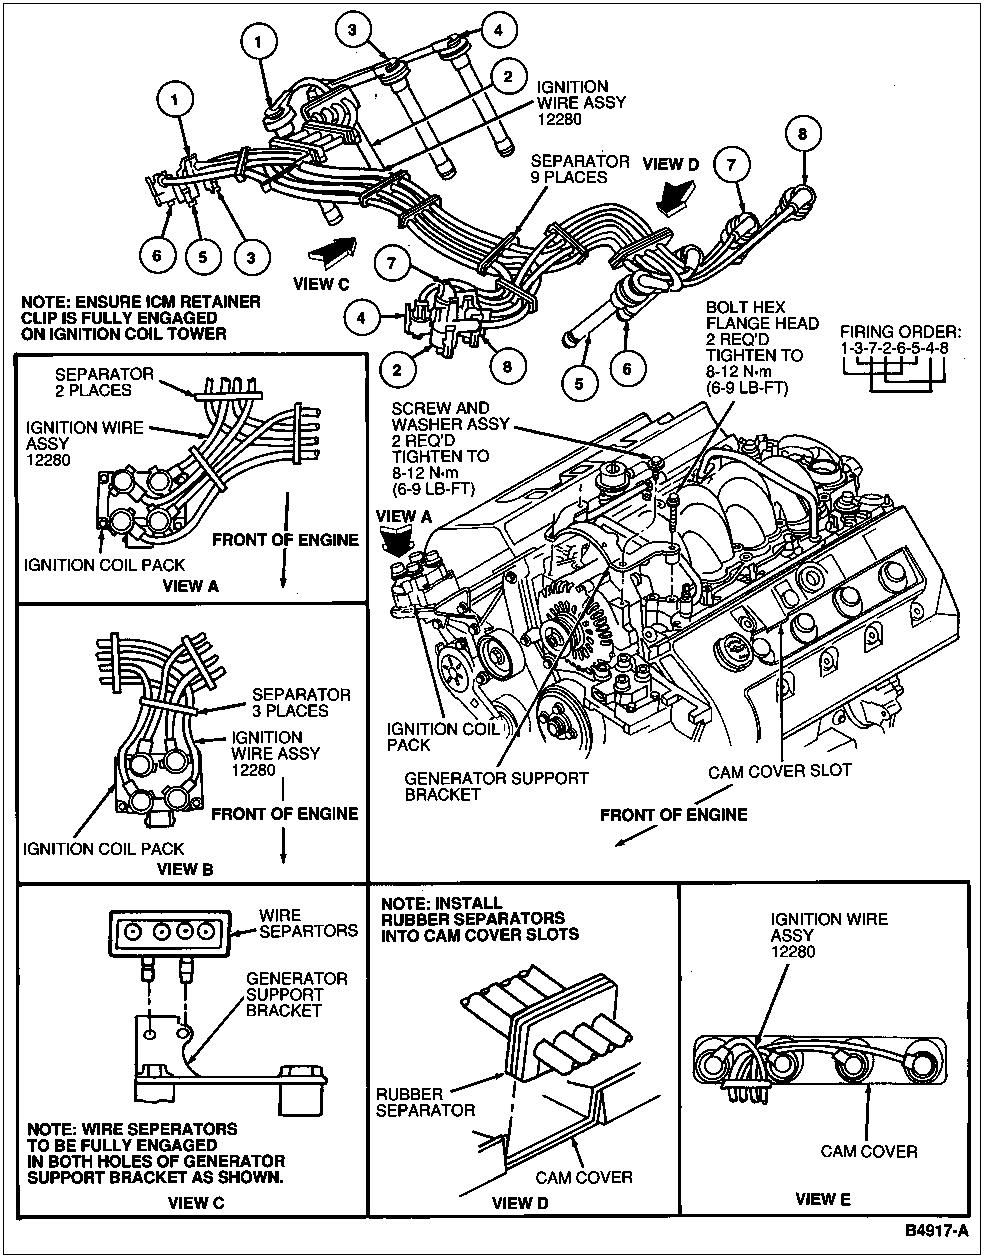 1999 Lincoln Town Car Engine Diagram Just Another Wiring Automotive Gas Diagrams 1989 Fuse Box Library Rh 18 Akszer Eu